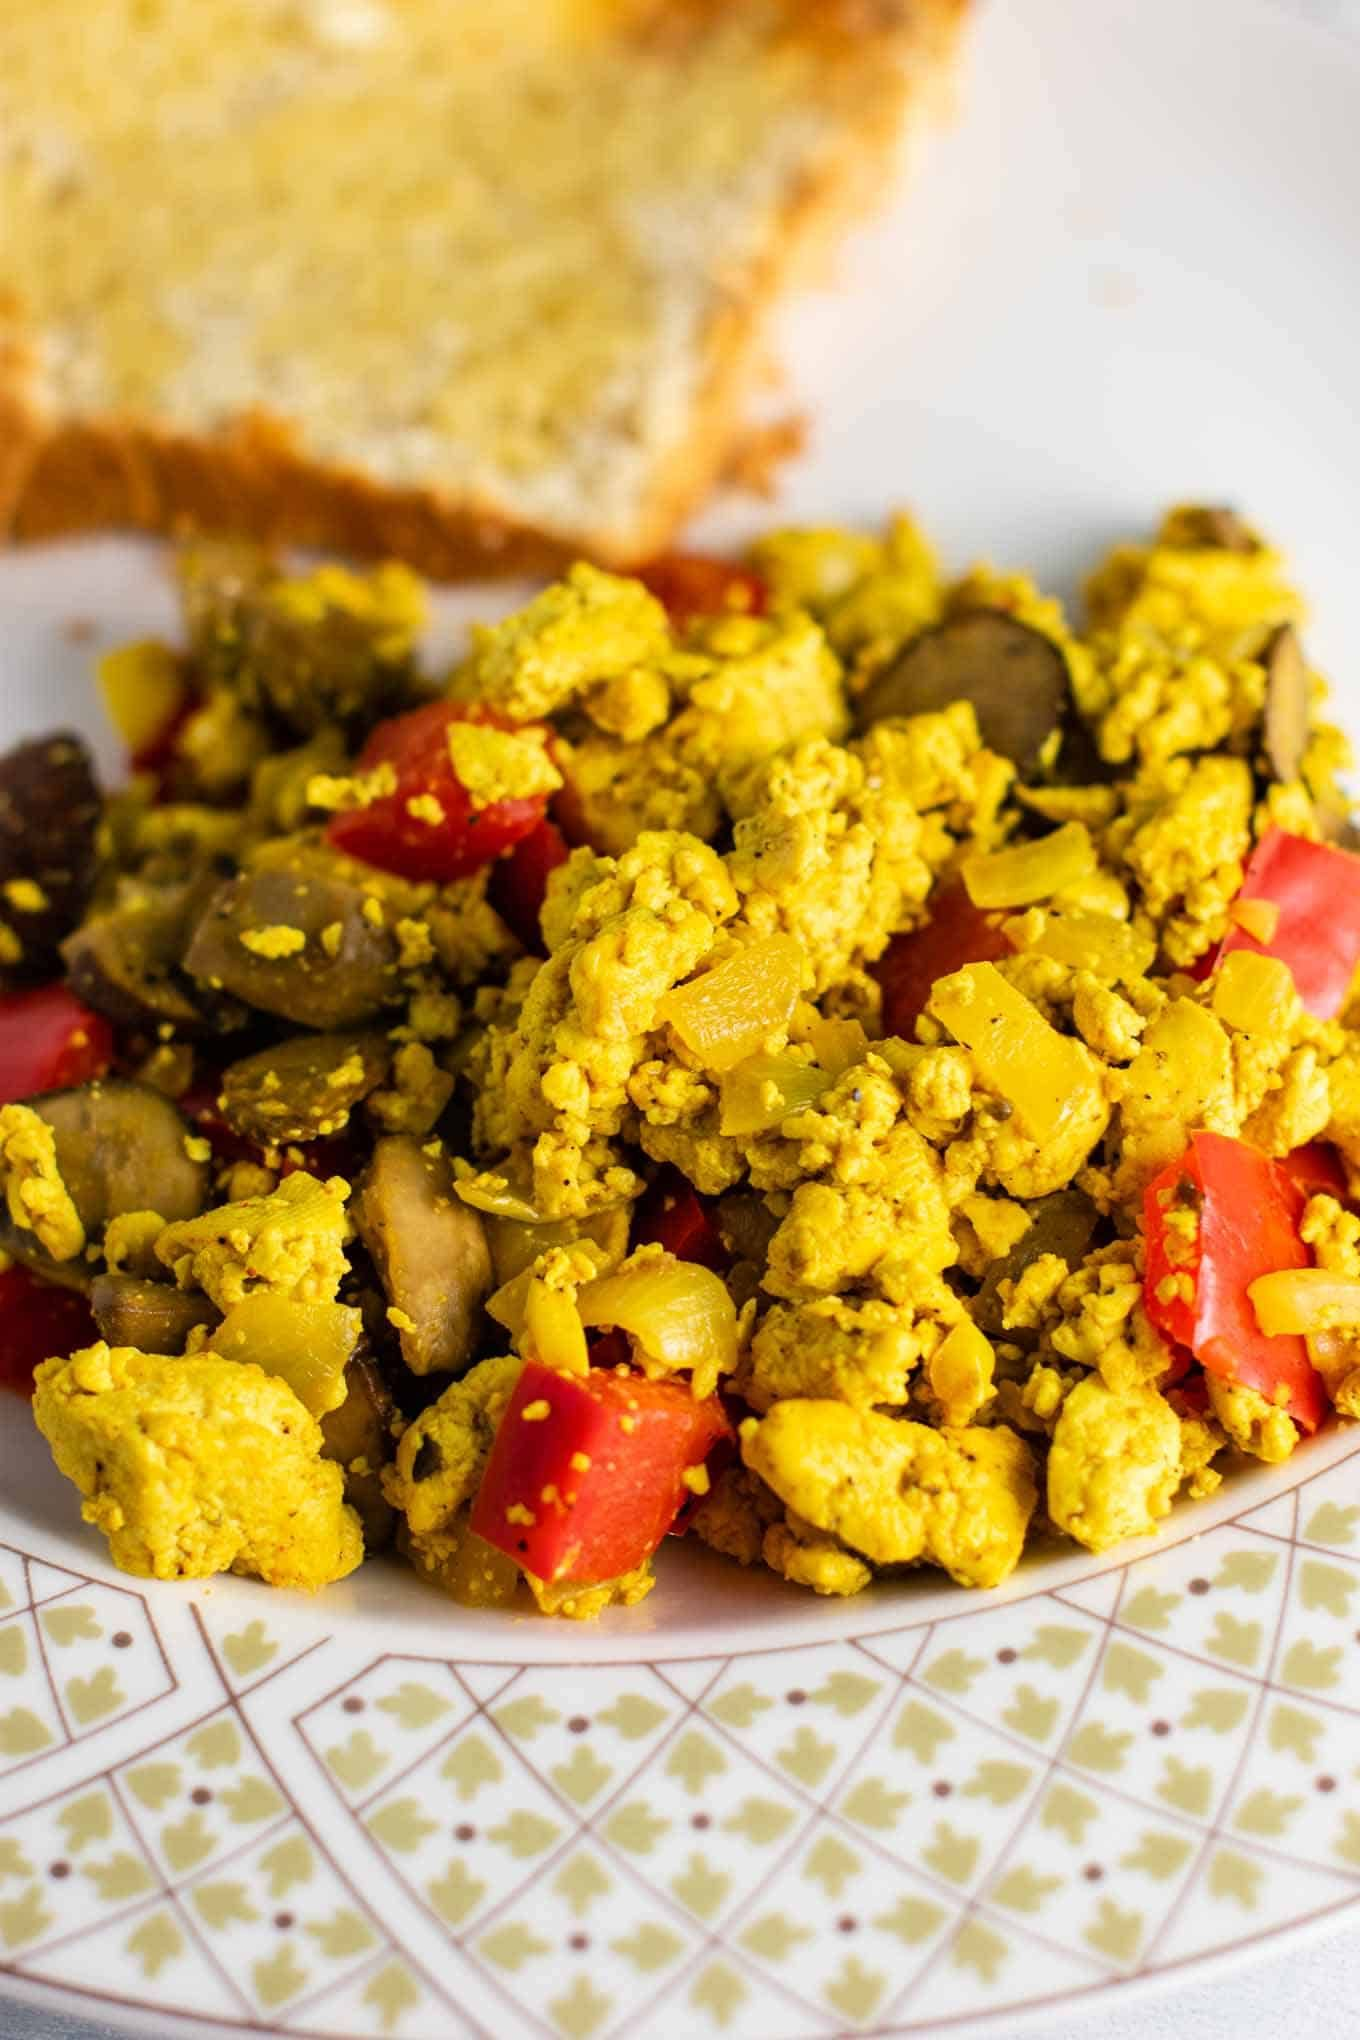 Vegan Breakfast Ideas Delicious Tofu Scrambled Tofu Recipe Tofu Scramble